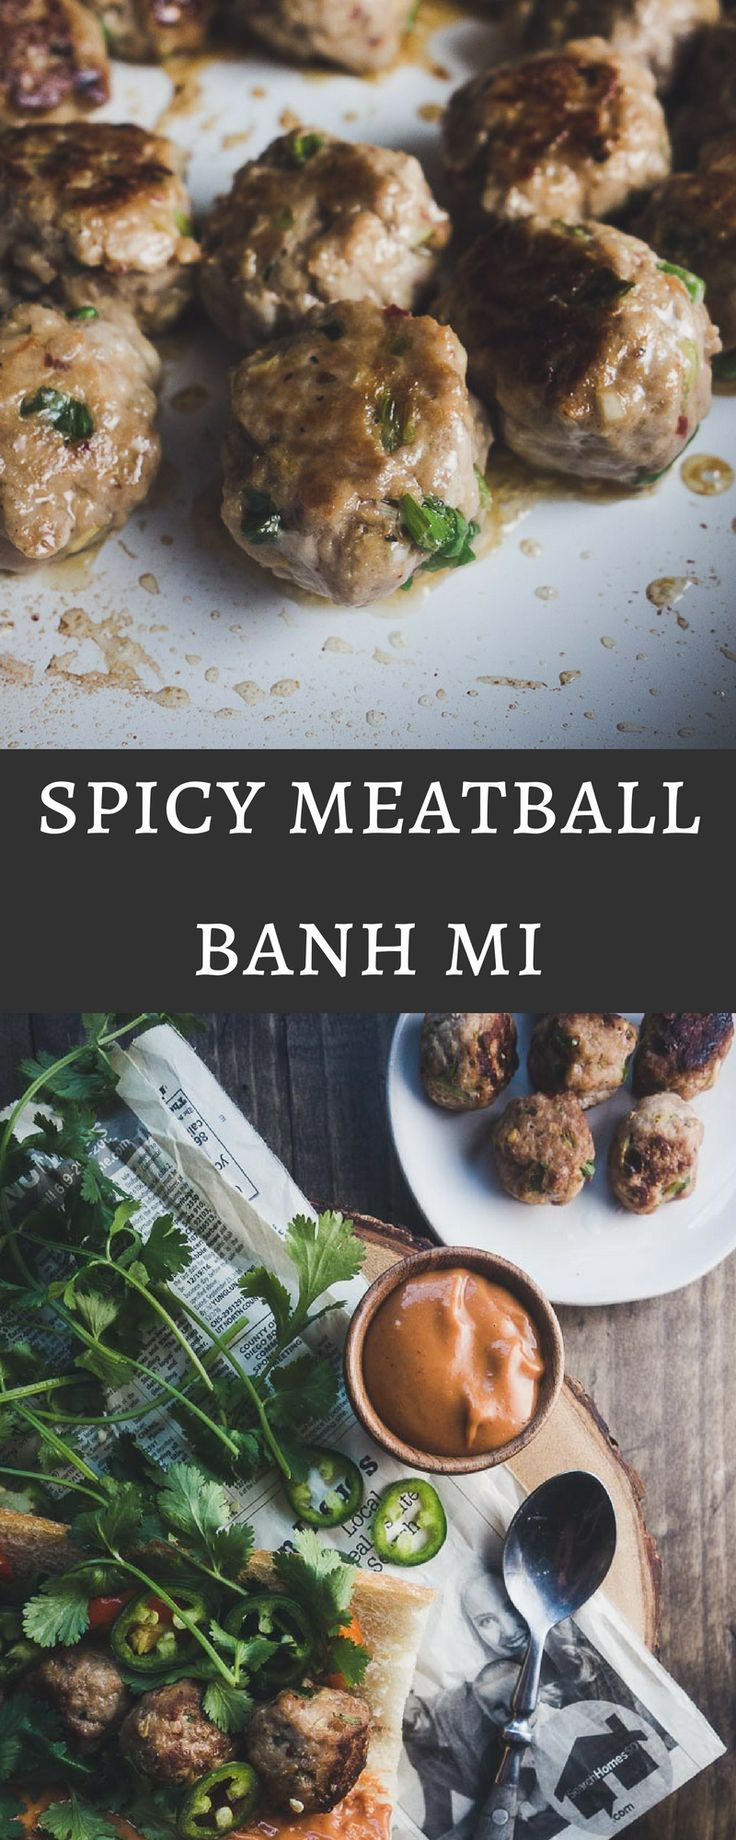 This spicy meatball banh mi takes less than 20 minutes to make and is served on a fresh chewy french baguette with sriracha hoisin mayonnaise...I love this sandwich!    vietnamese pork meatballs | banh mi | low carb banh mi meatballs | paleo meatballs | meatball banh mi | spicy hoisin mayonnaise | sriracha mayonnaise | vietnamese meatballs | vietnamese sandwich | banh mi meatballs | easy banh mi recipe via @Went Here 8 This